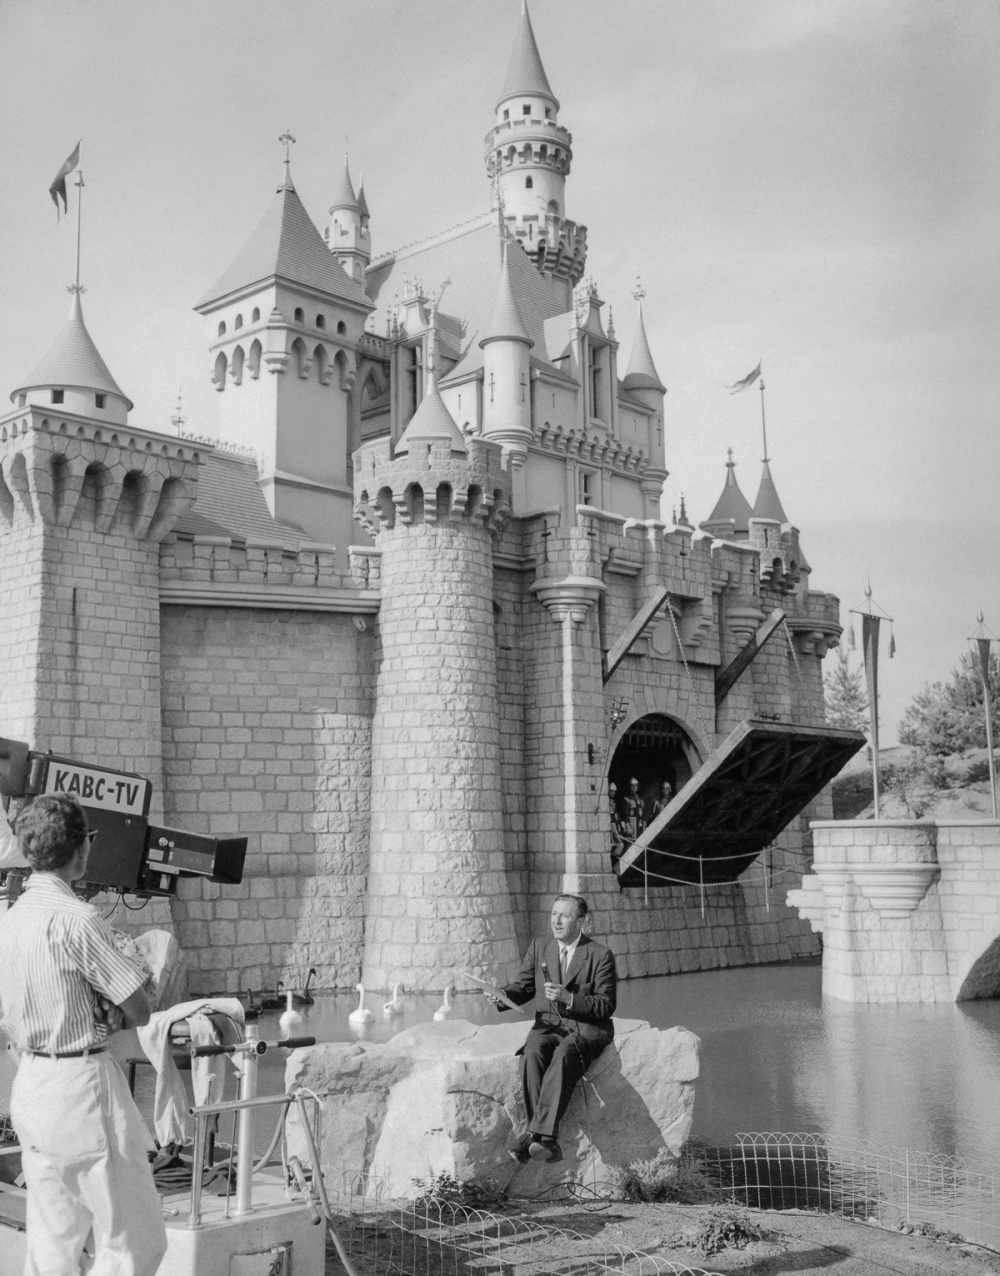 18 Jul 1955, Anaheim, California, USA --- Original caption: Walt Disney, the cartoonist-producer and lately creator of Disneyland, the 160-acre, $17,000,000 playground for children, sits in front of his Fantasyland castle during a telecast of the official opening of the playground. The premiere was televised nationally. --- Image by © Bettmann/CORBIS